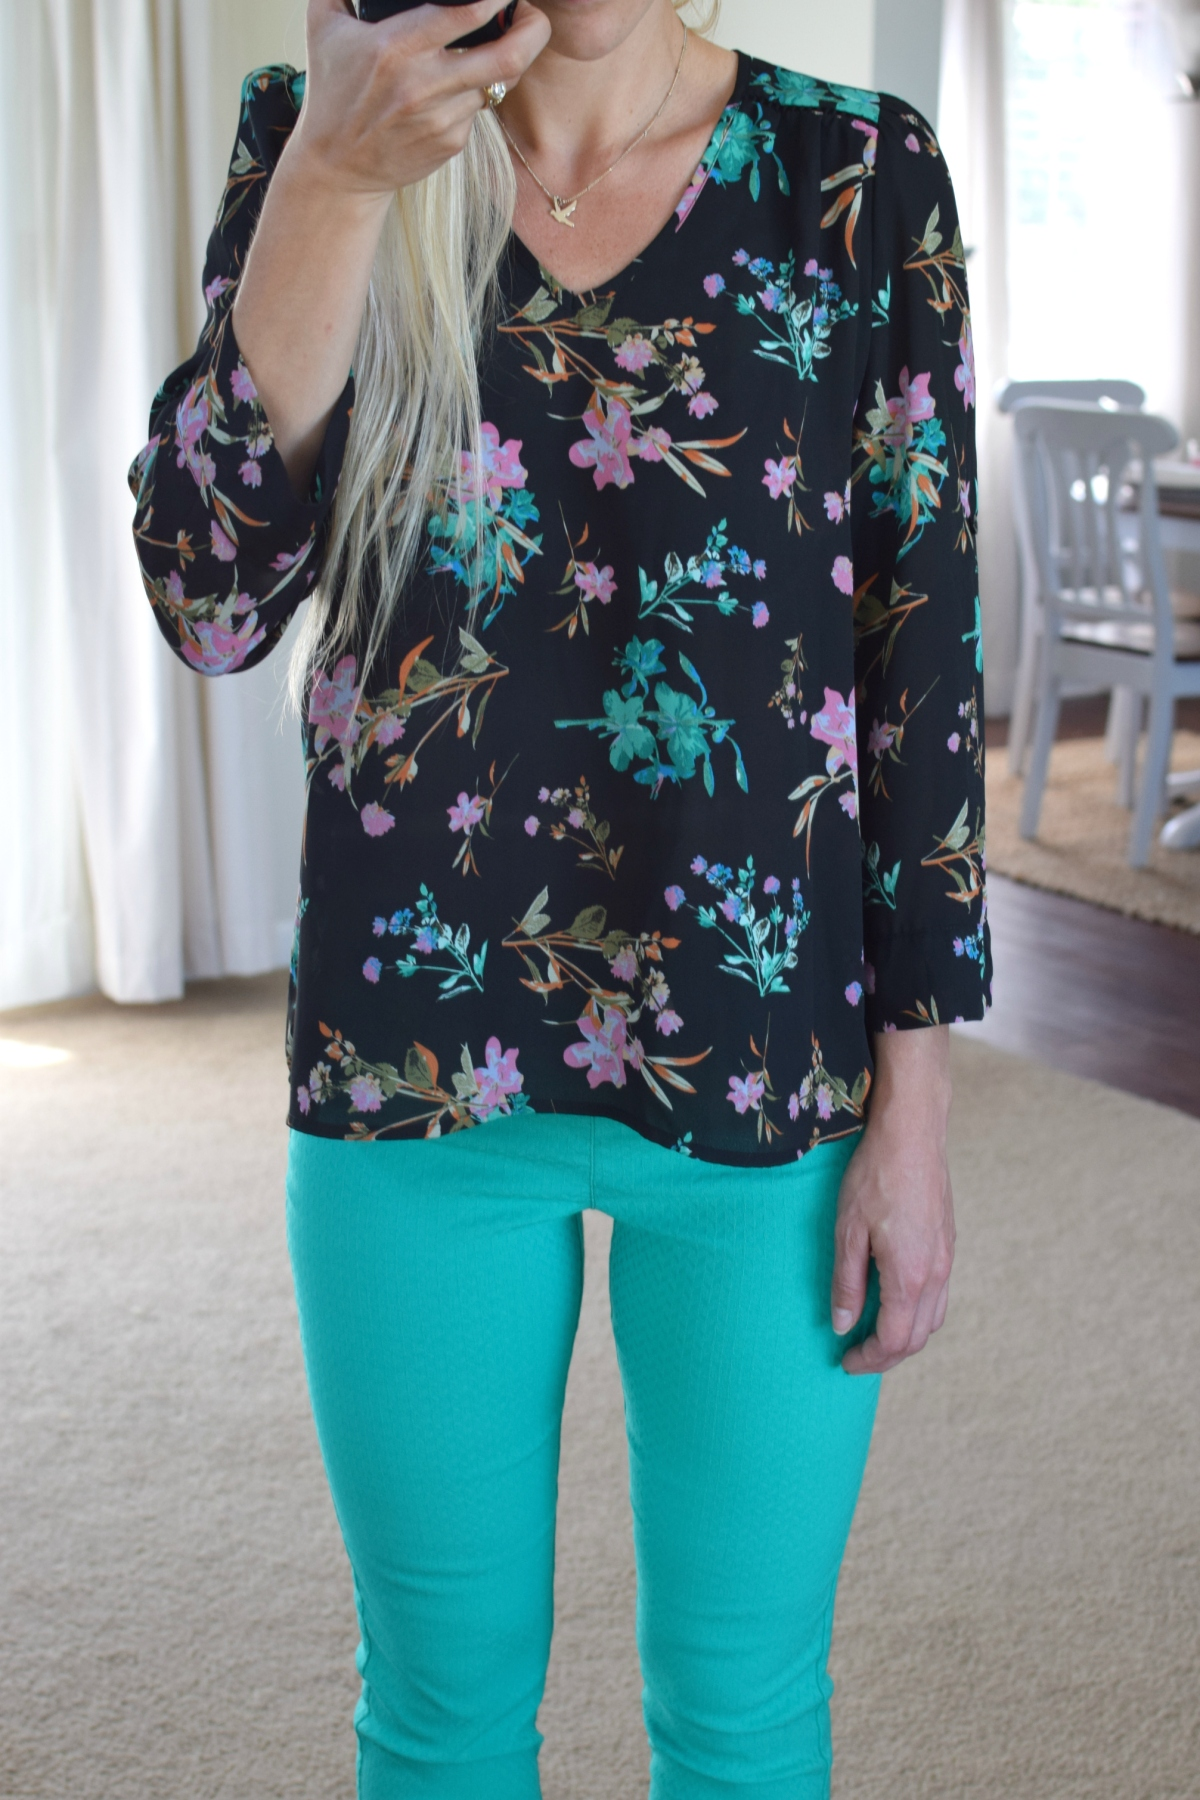 Tropical floral top and teal skinnies for a summer work look |www.pearlsandsportsbras.com|